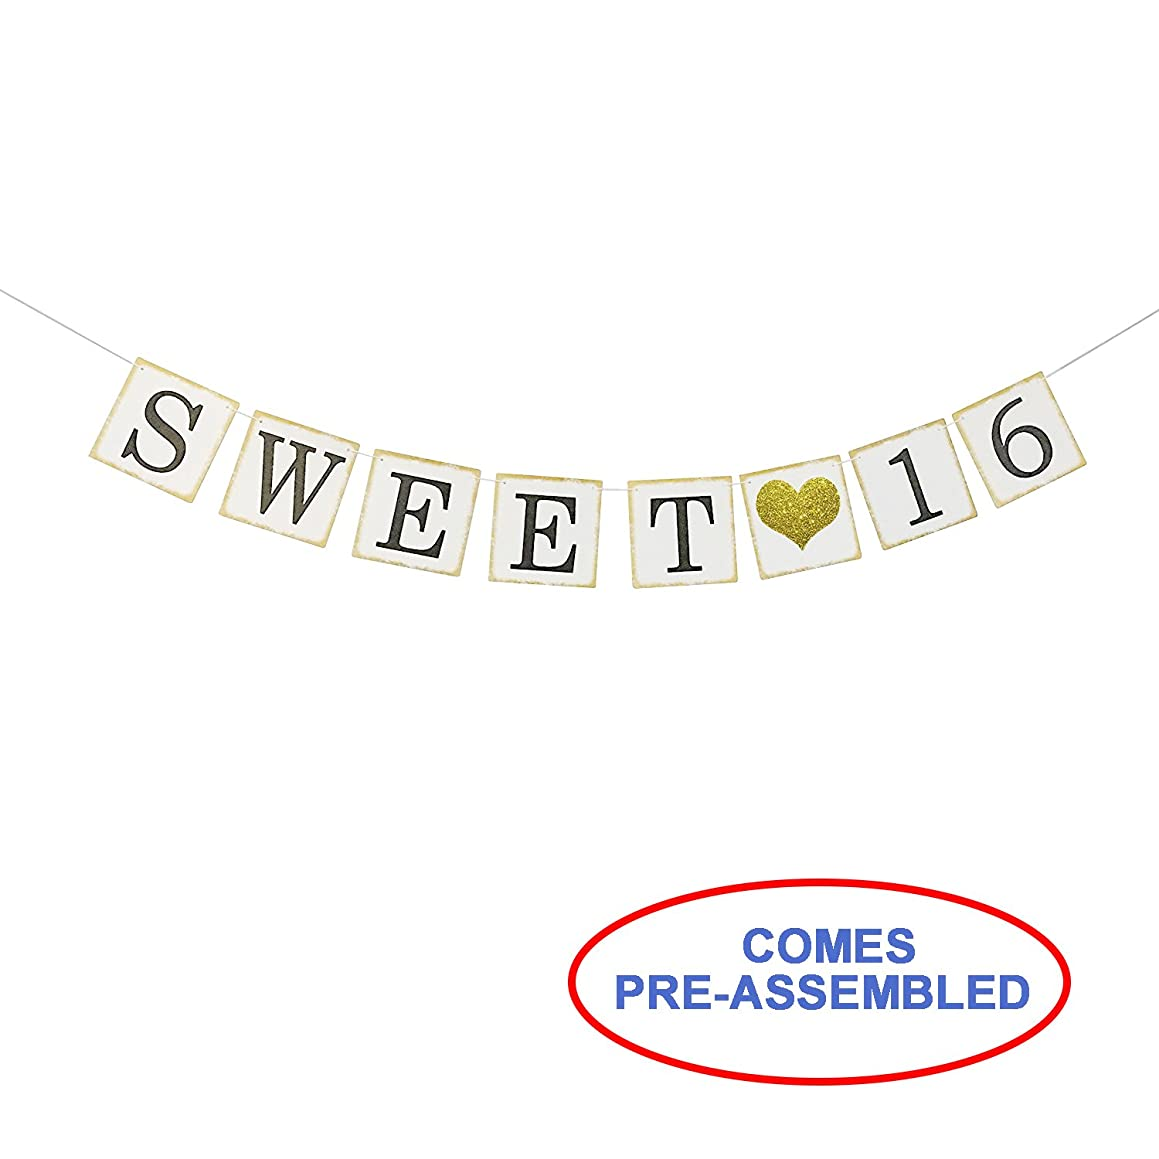 Sweet 16 Birthday Banner Gold Glitter – Sweet Sixteen Decorations, Party Favors, Supplies, Gifts, Themes and Ideas - Vintage Happy Birthday Decorations